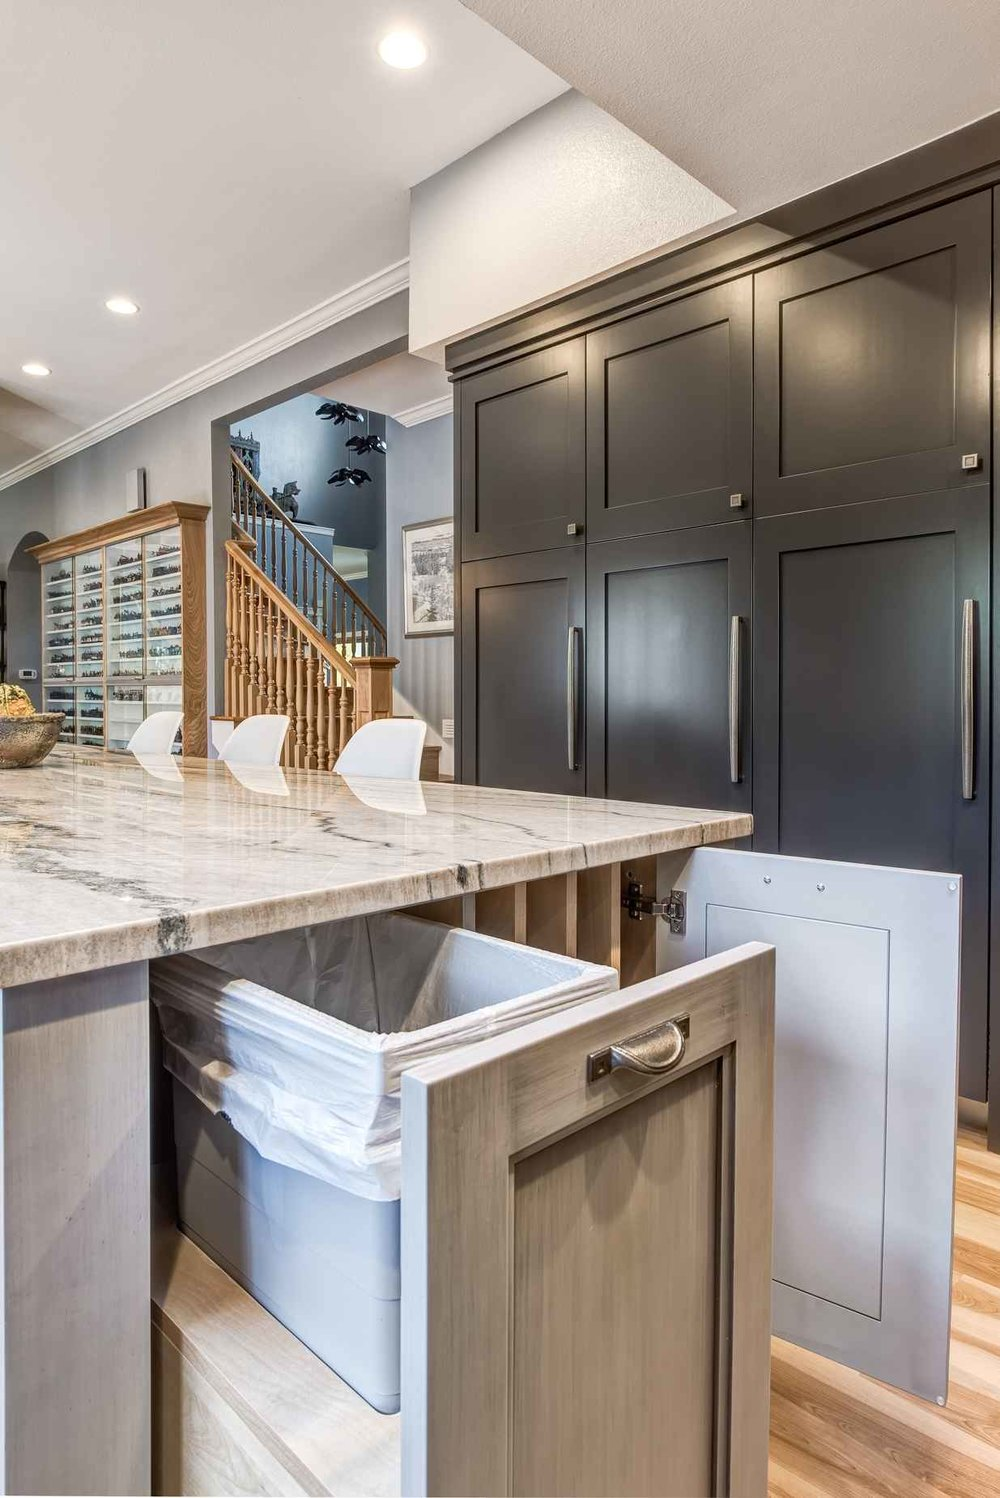 le domaine de chef — sanctuary kitchen and bath design-9.jpg